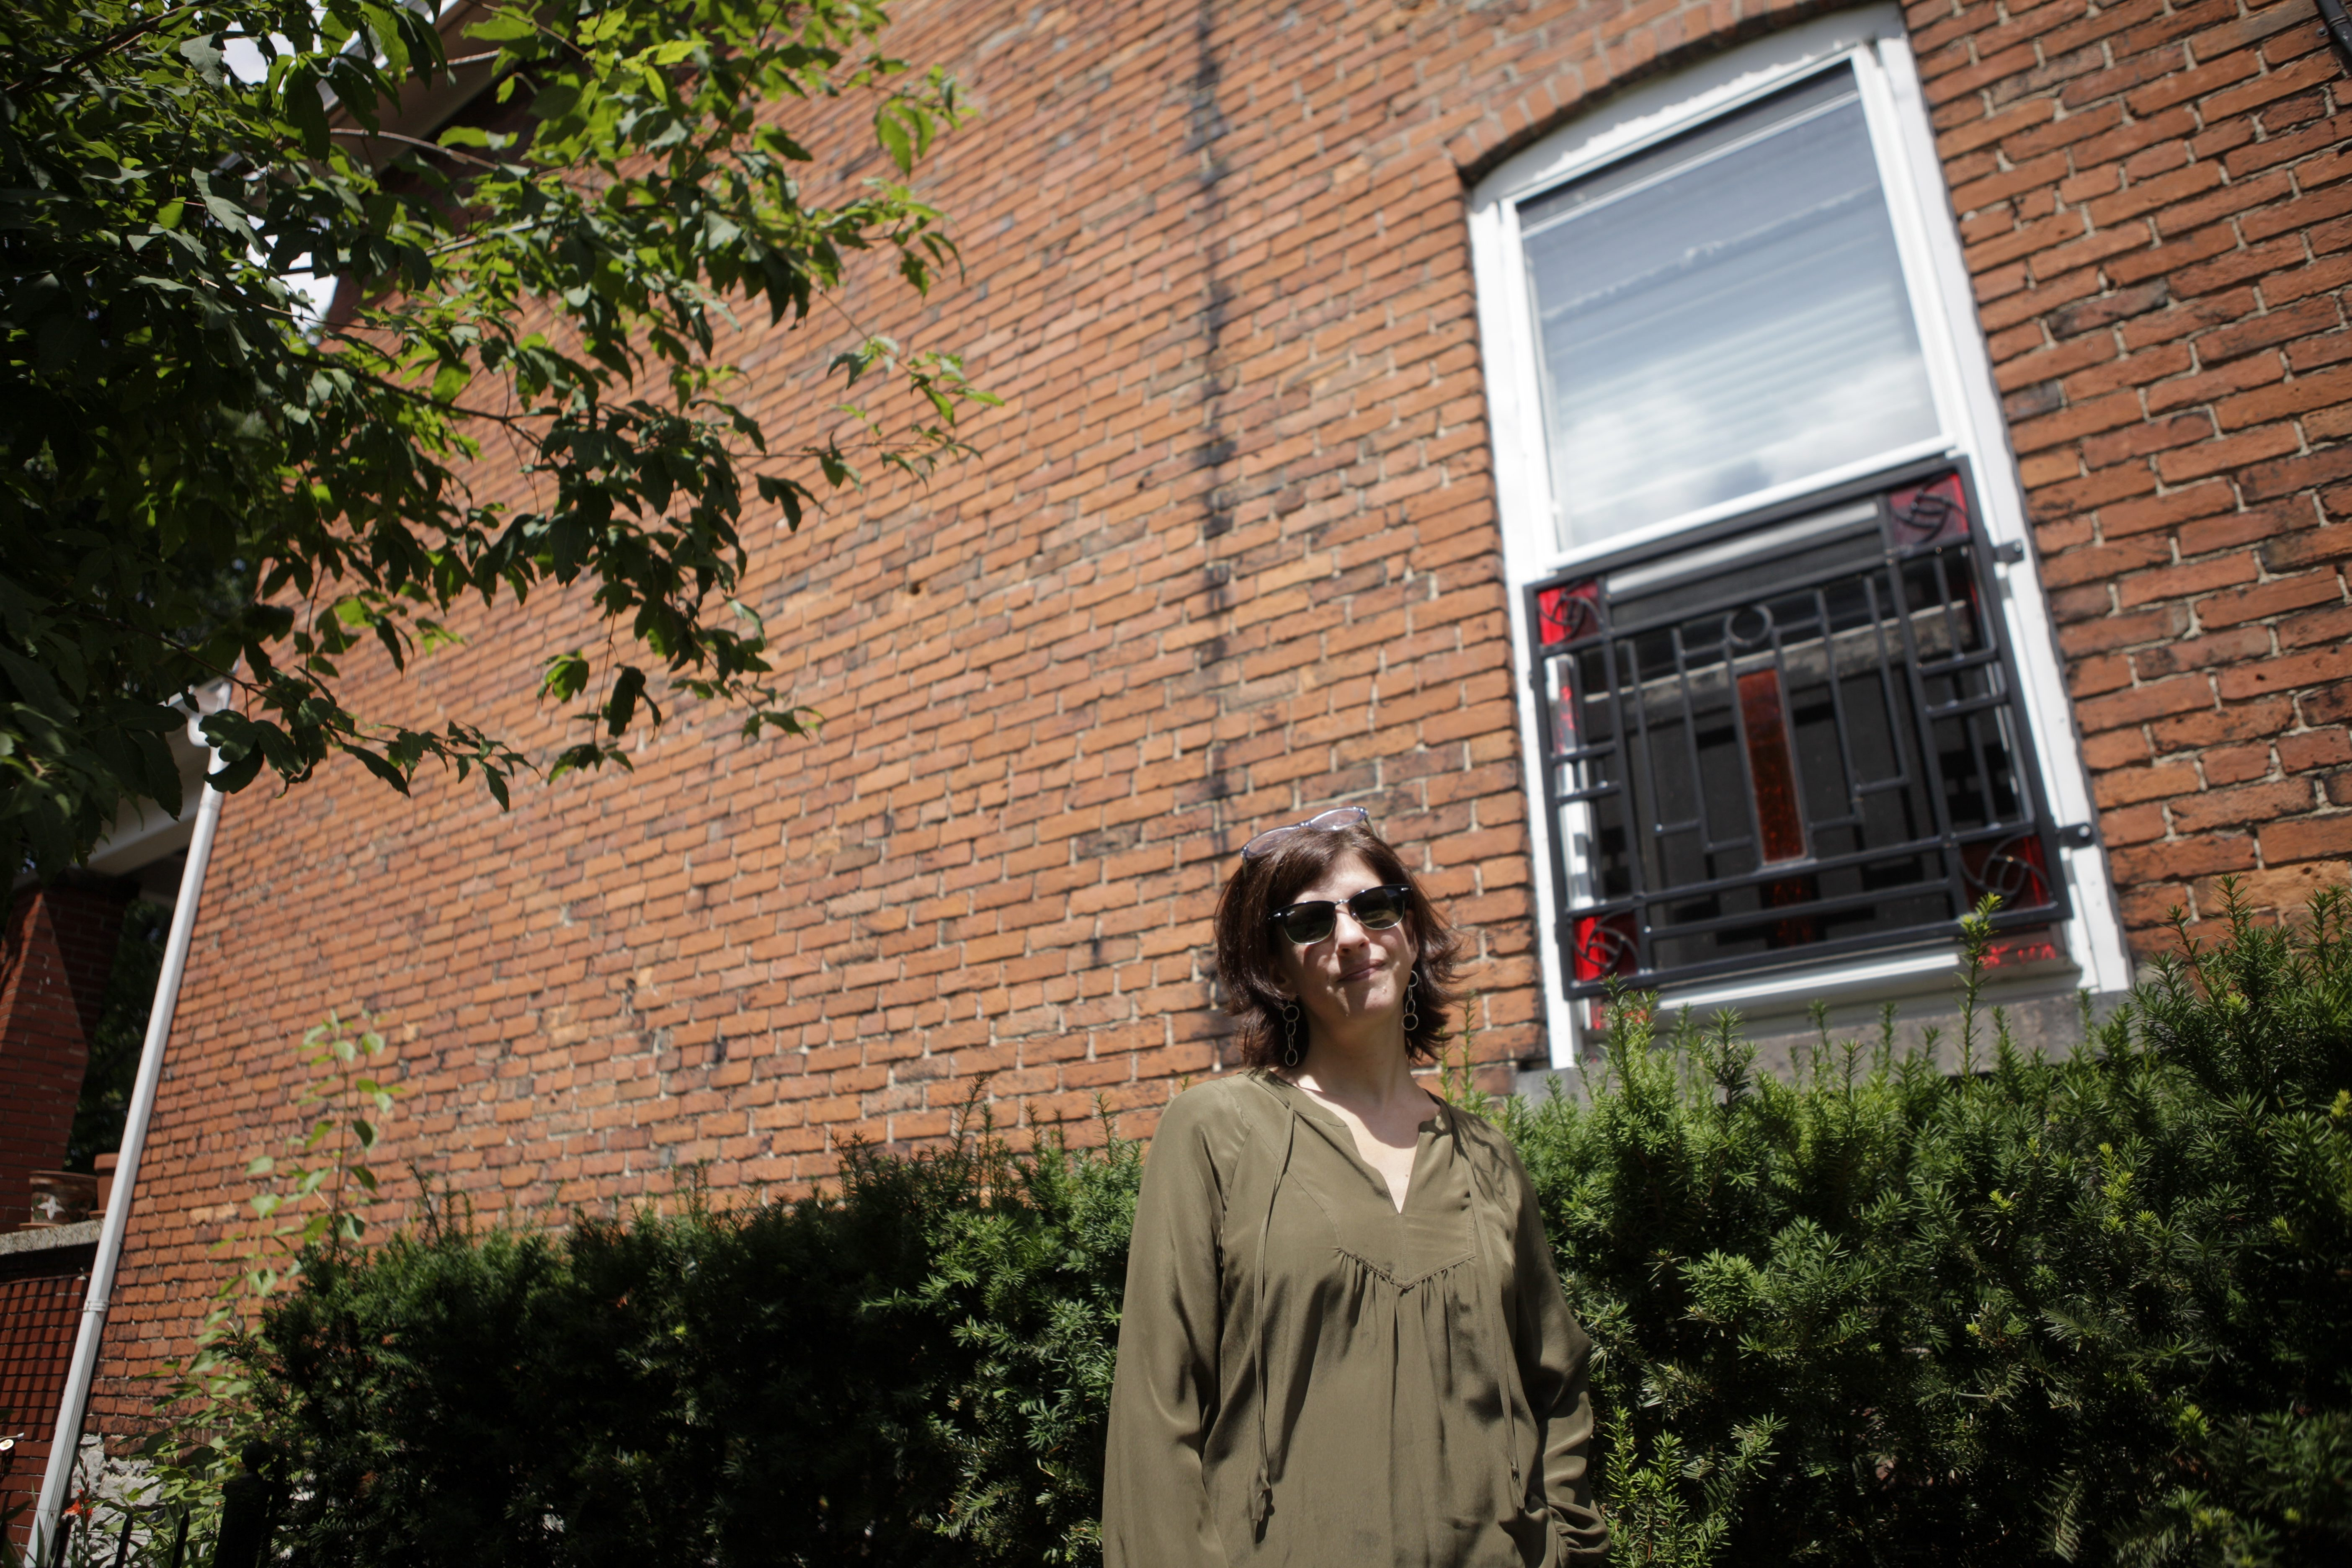 After a break-in about six years ago in her West Side home, Deb Ellis installed metal bars on her first-level windows as a deterrent.